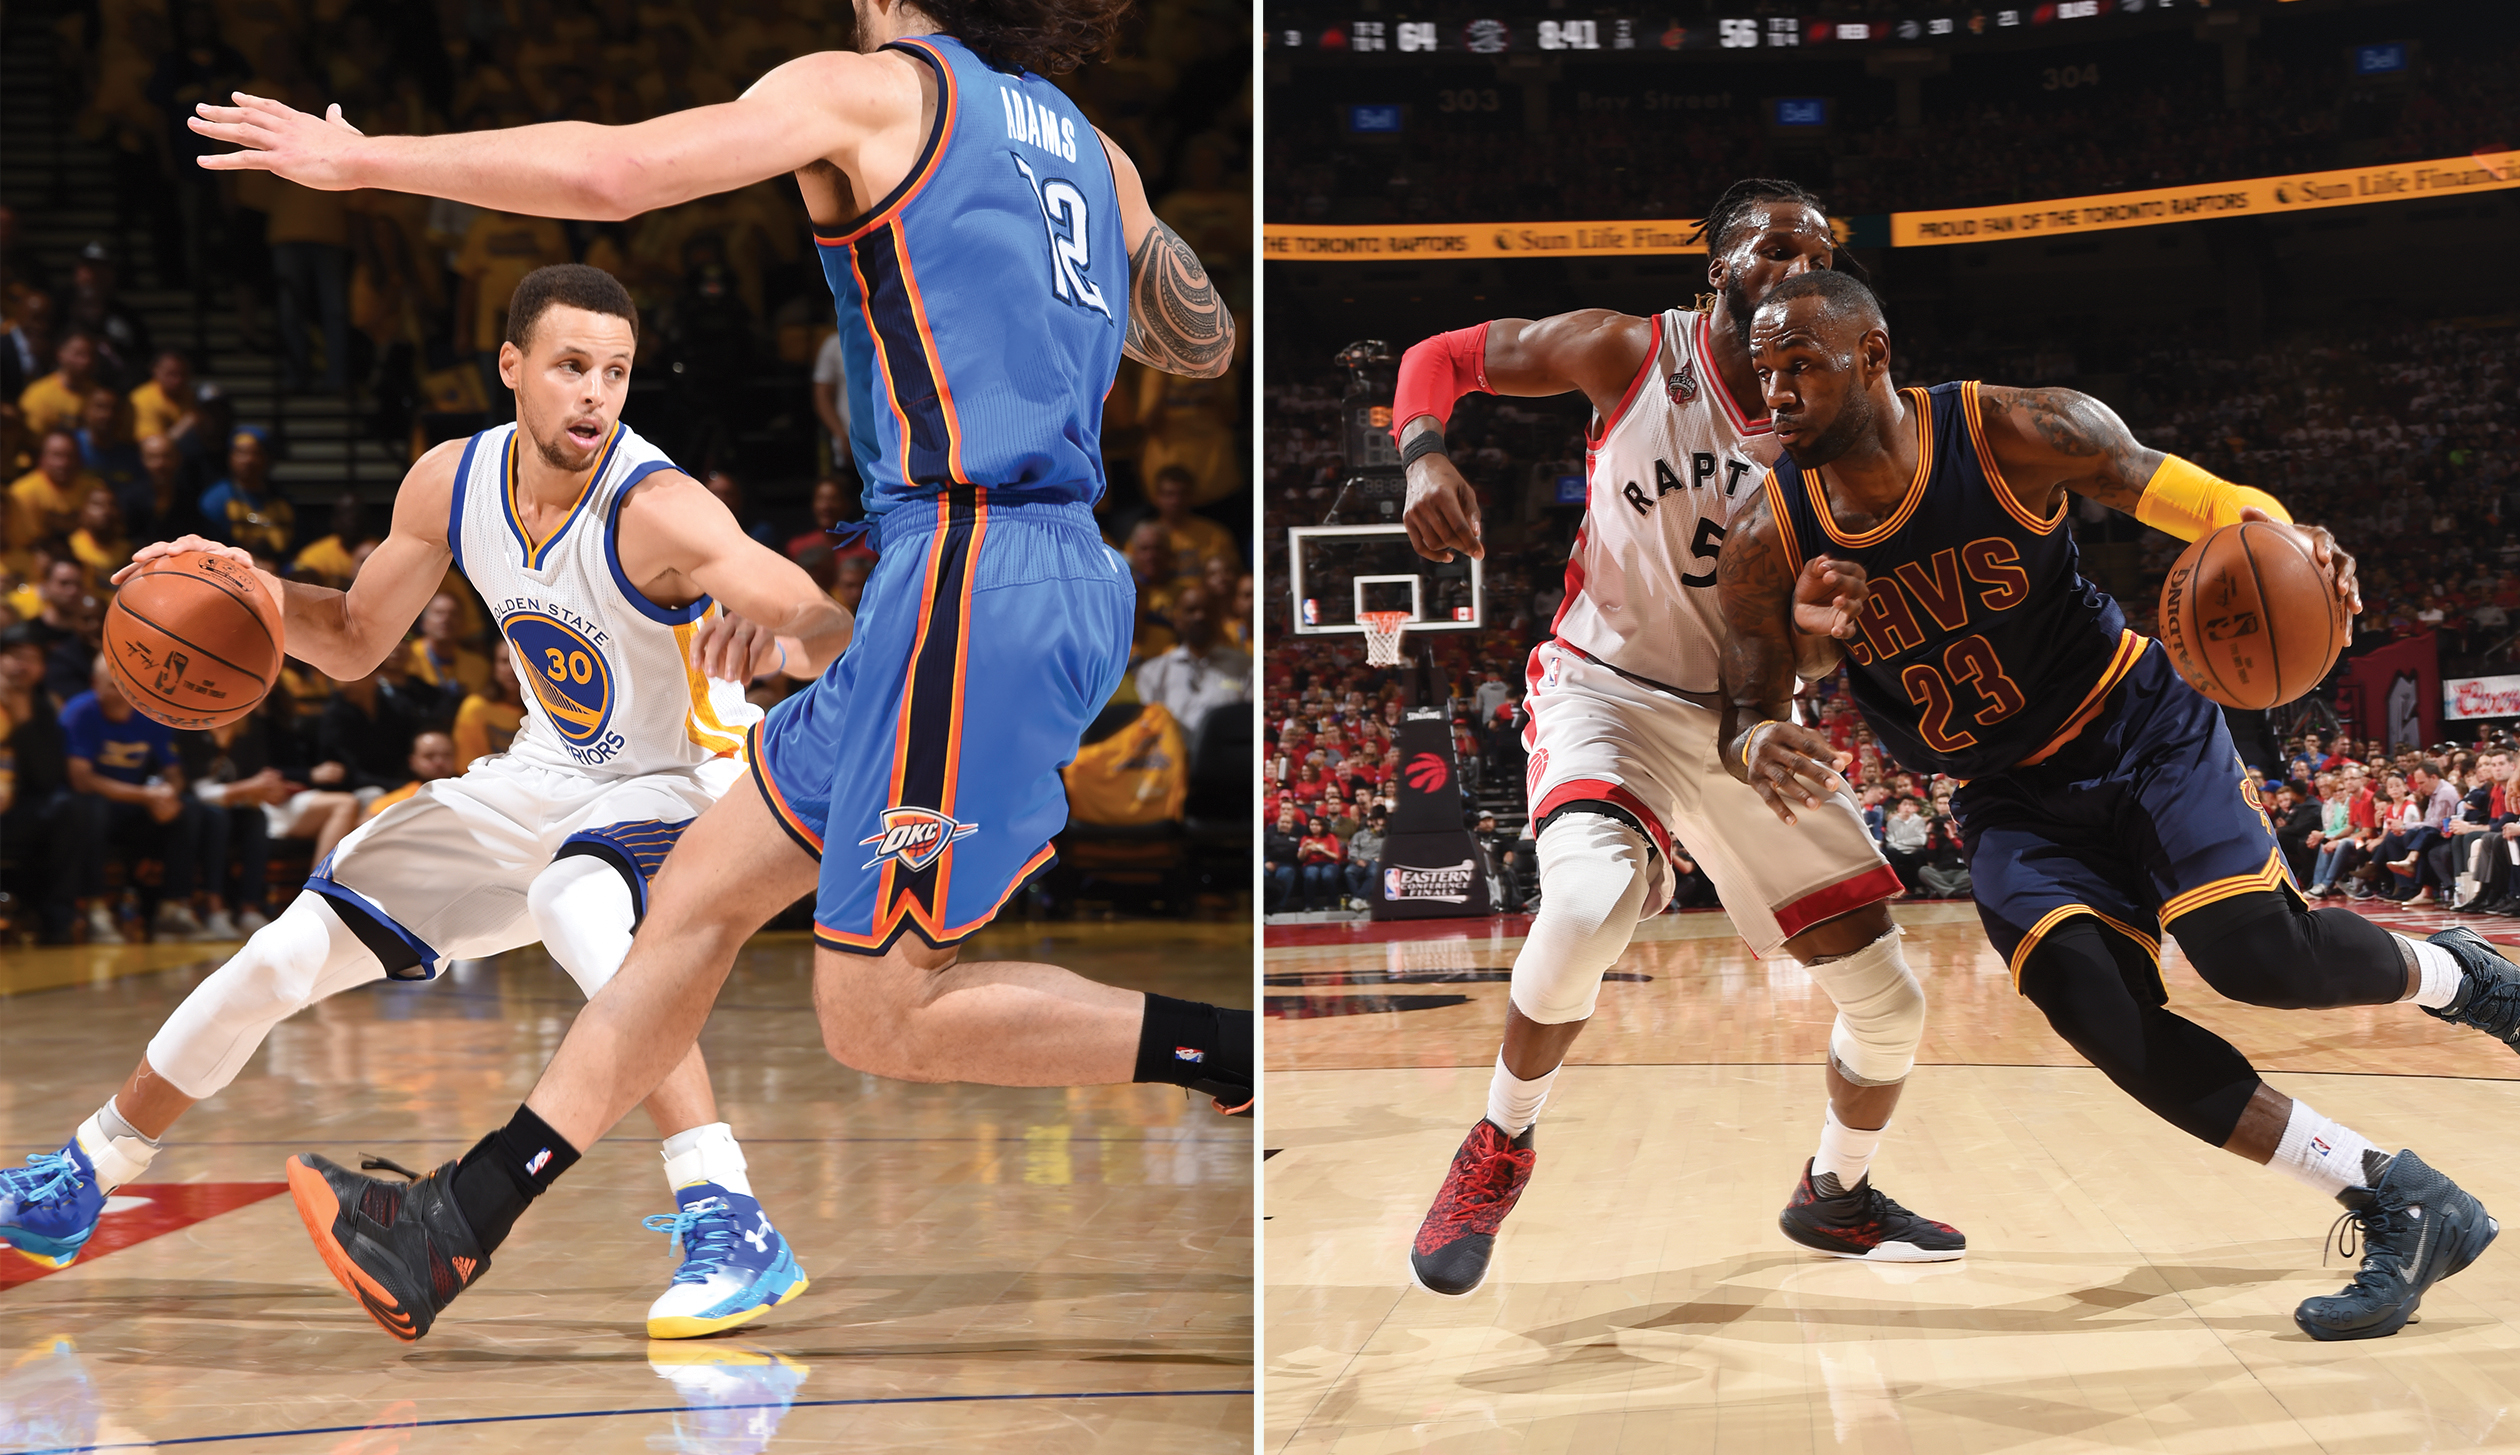 Steph Curry, left and LeBron James will meet tonight for the first game of the NBA finals. Their duel also represents a battle between athletic endorsers Under Armour (which backs Curry) and Nike athlete James.